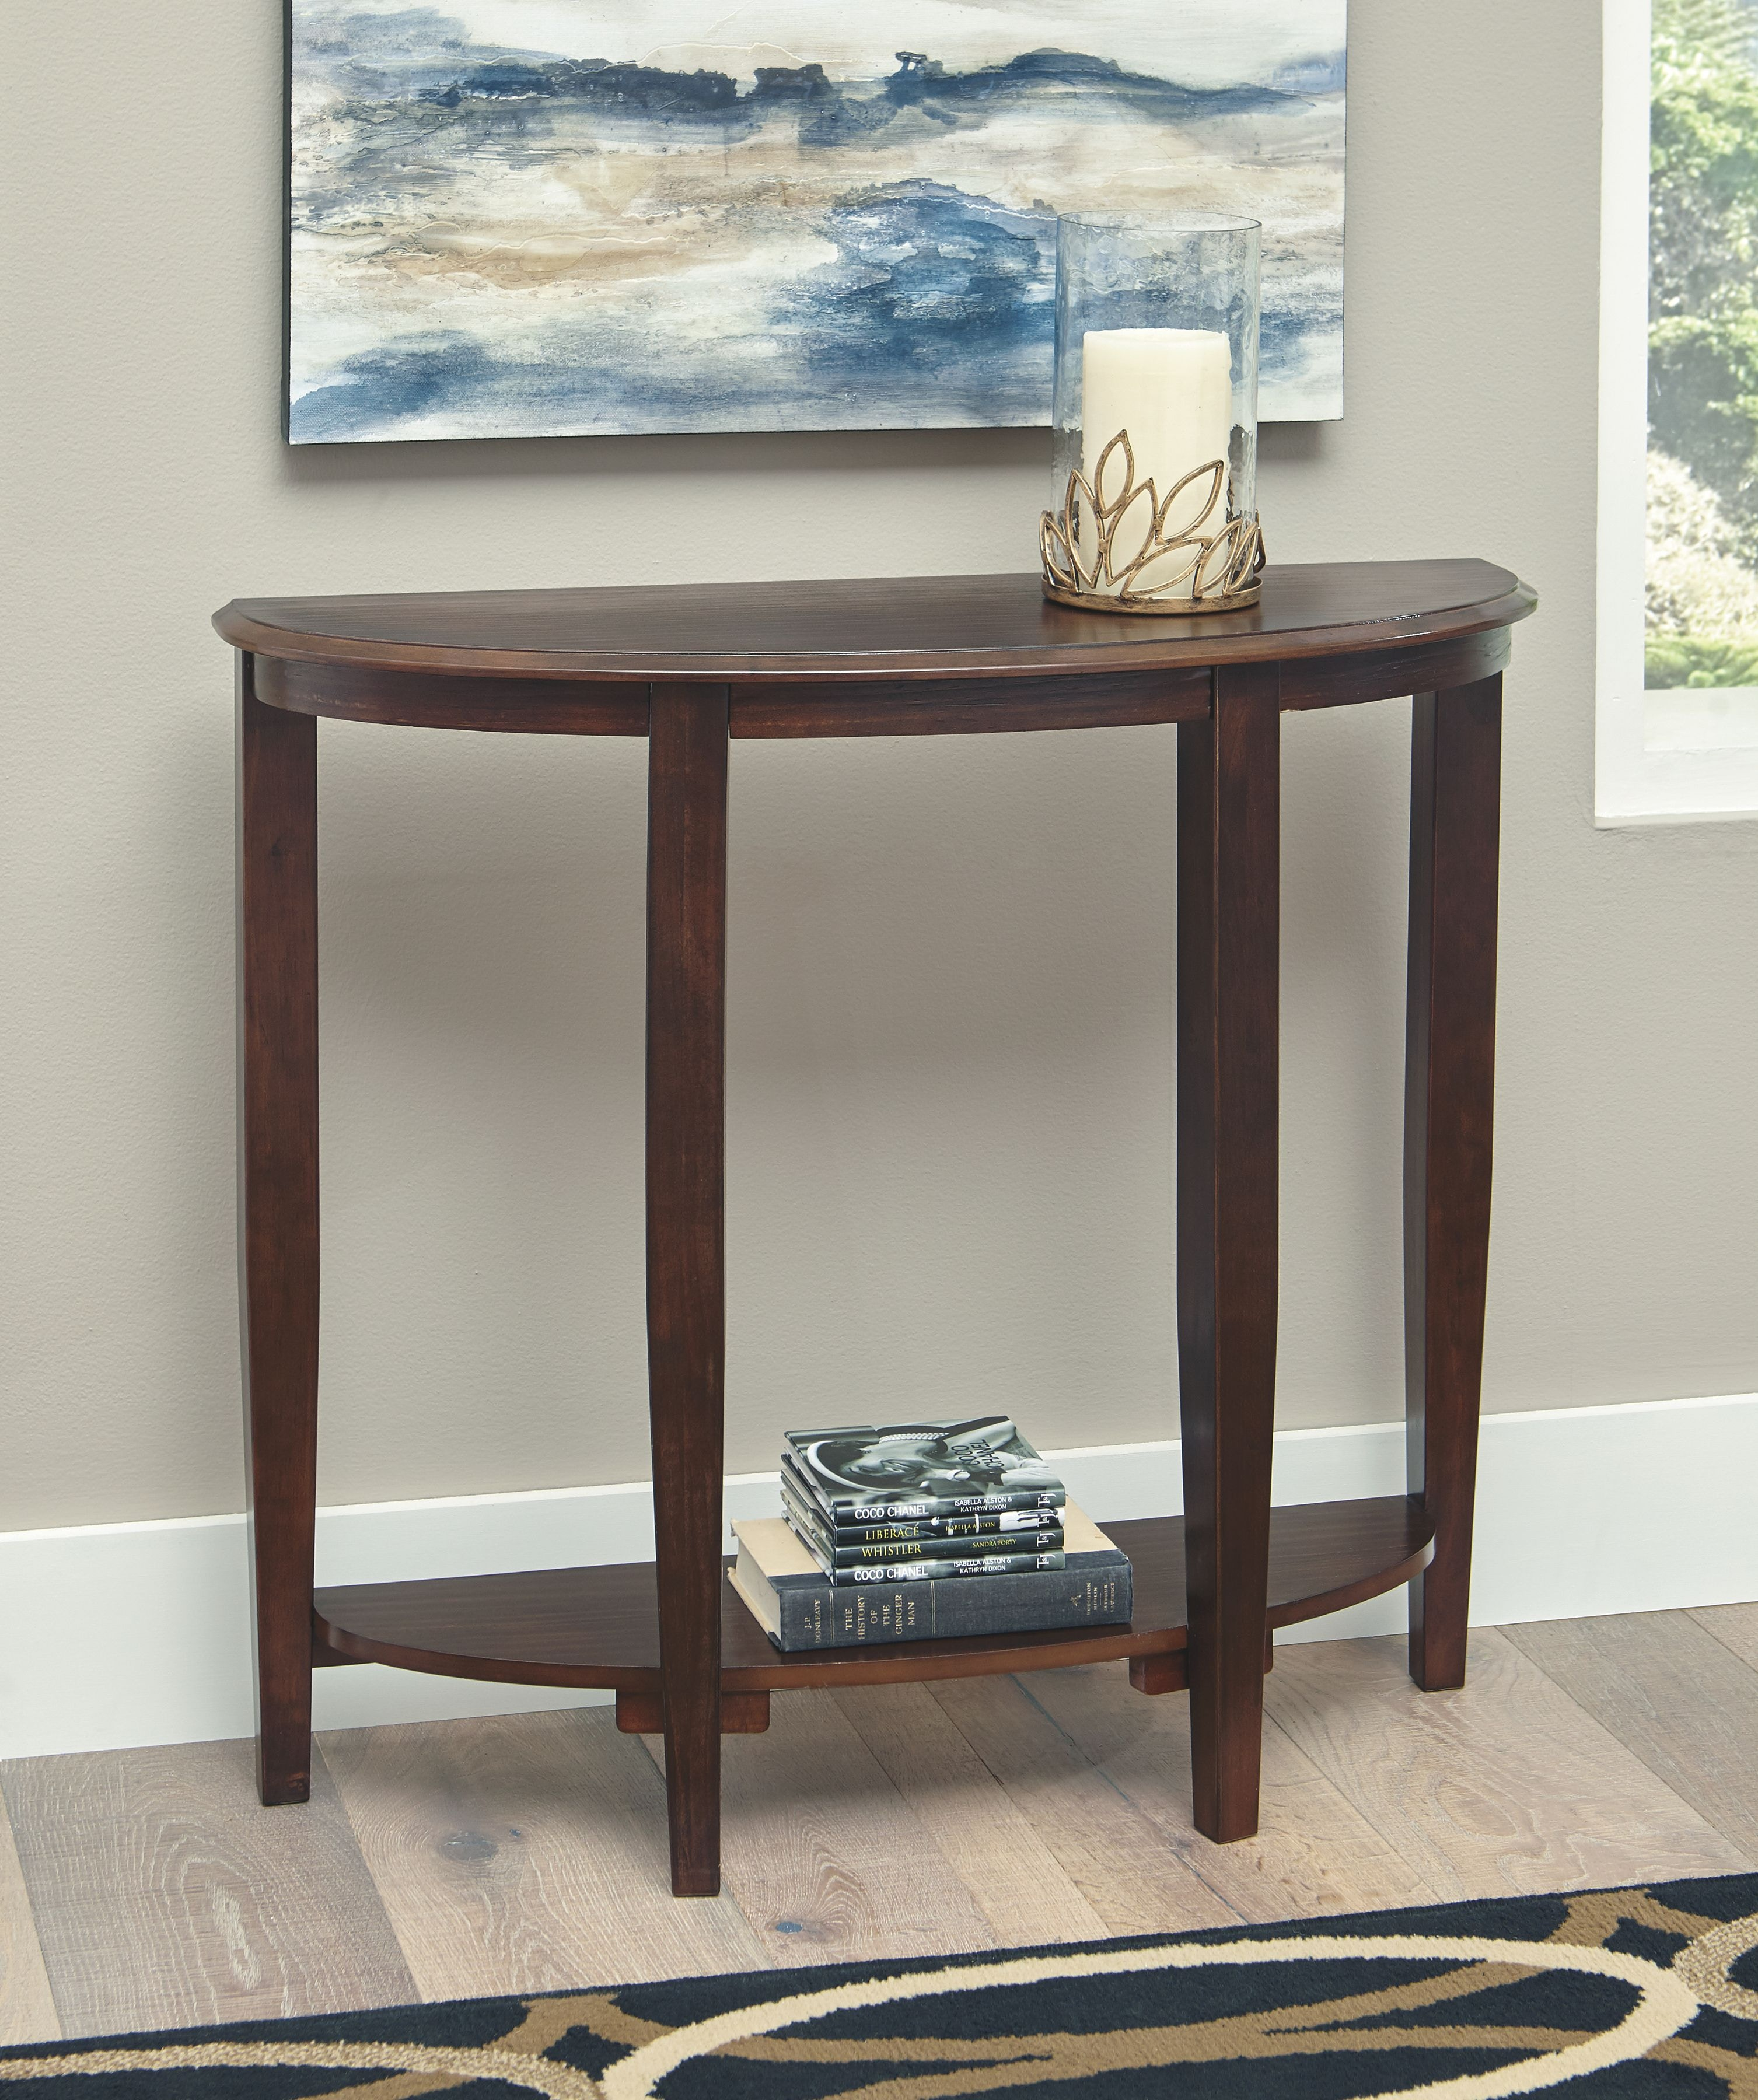 Signature Design By Ashley Living Room Console Sofa Table A4000123